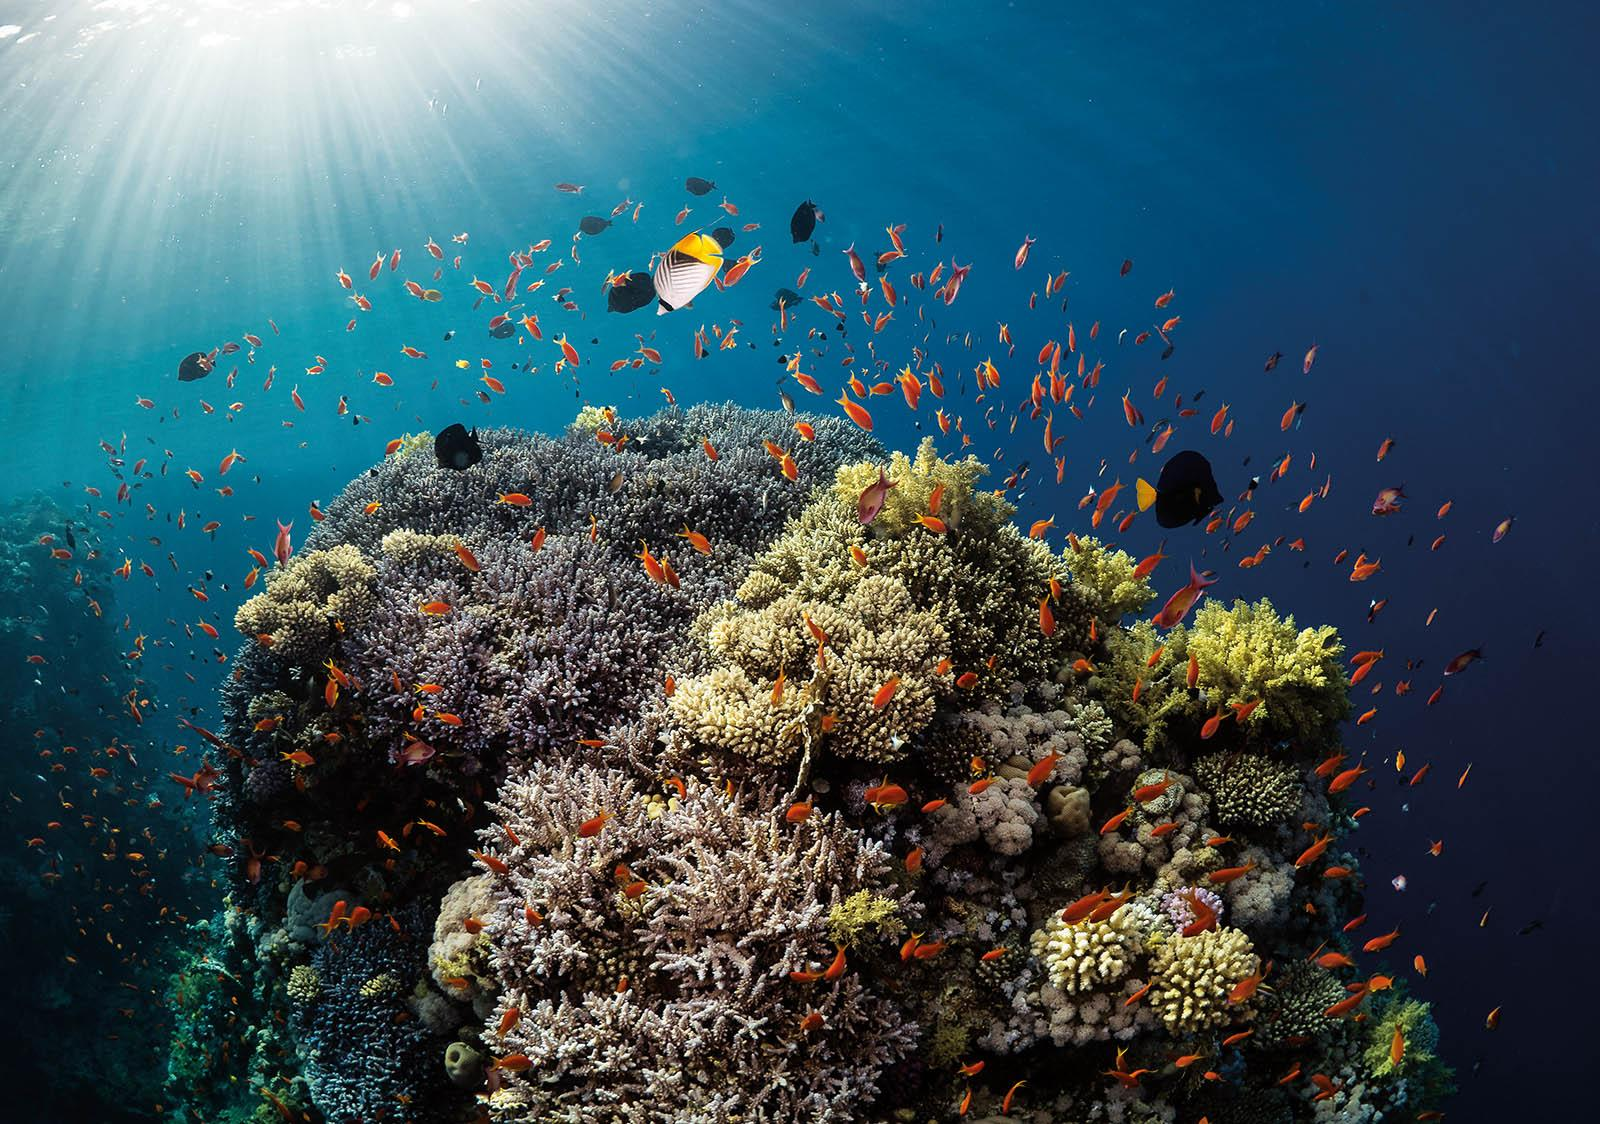 Coral Reef Sun Beams - Photographs by Paul Duxfield